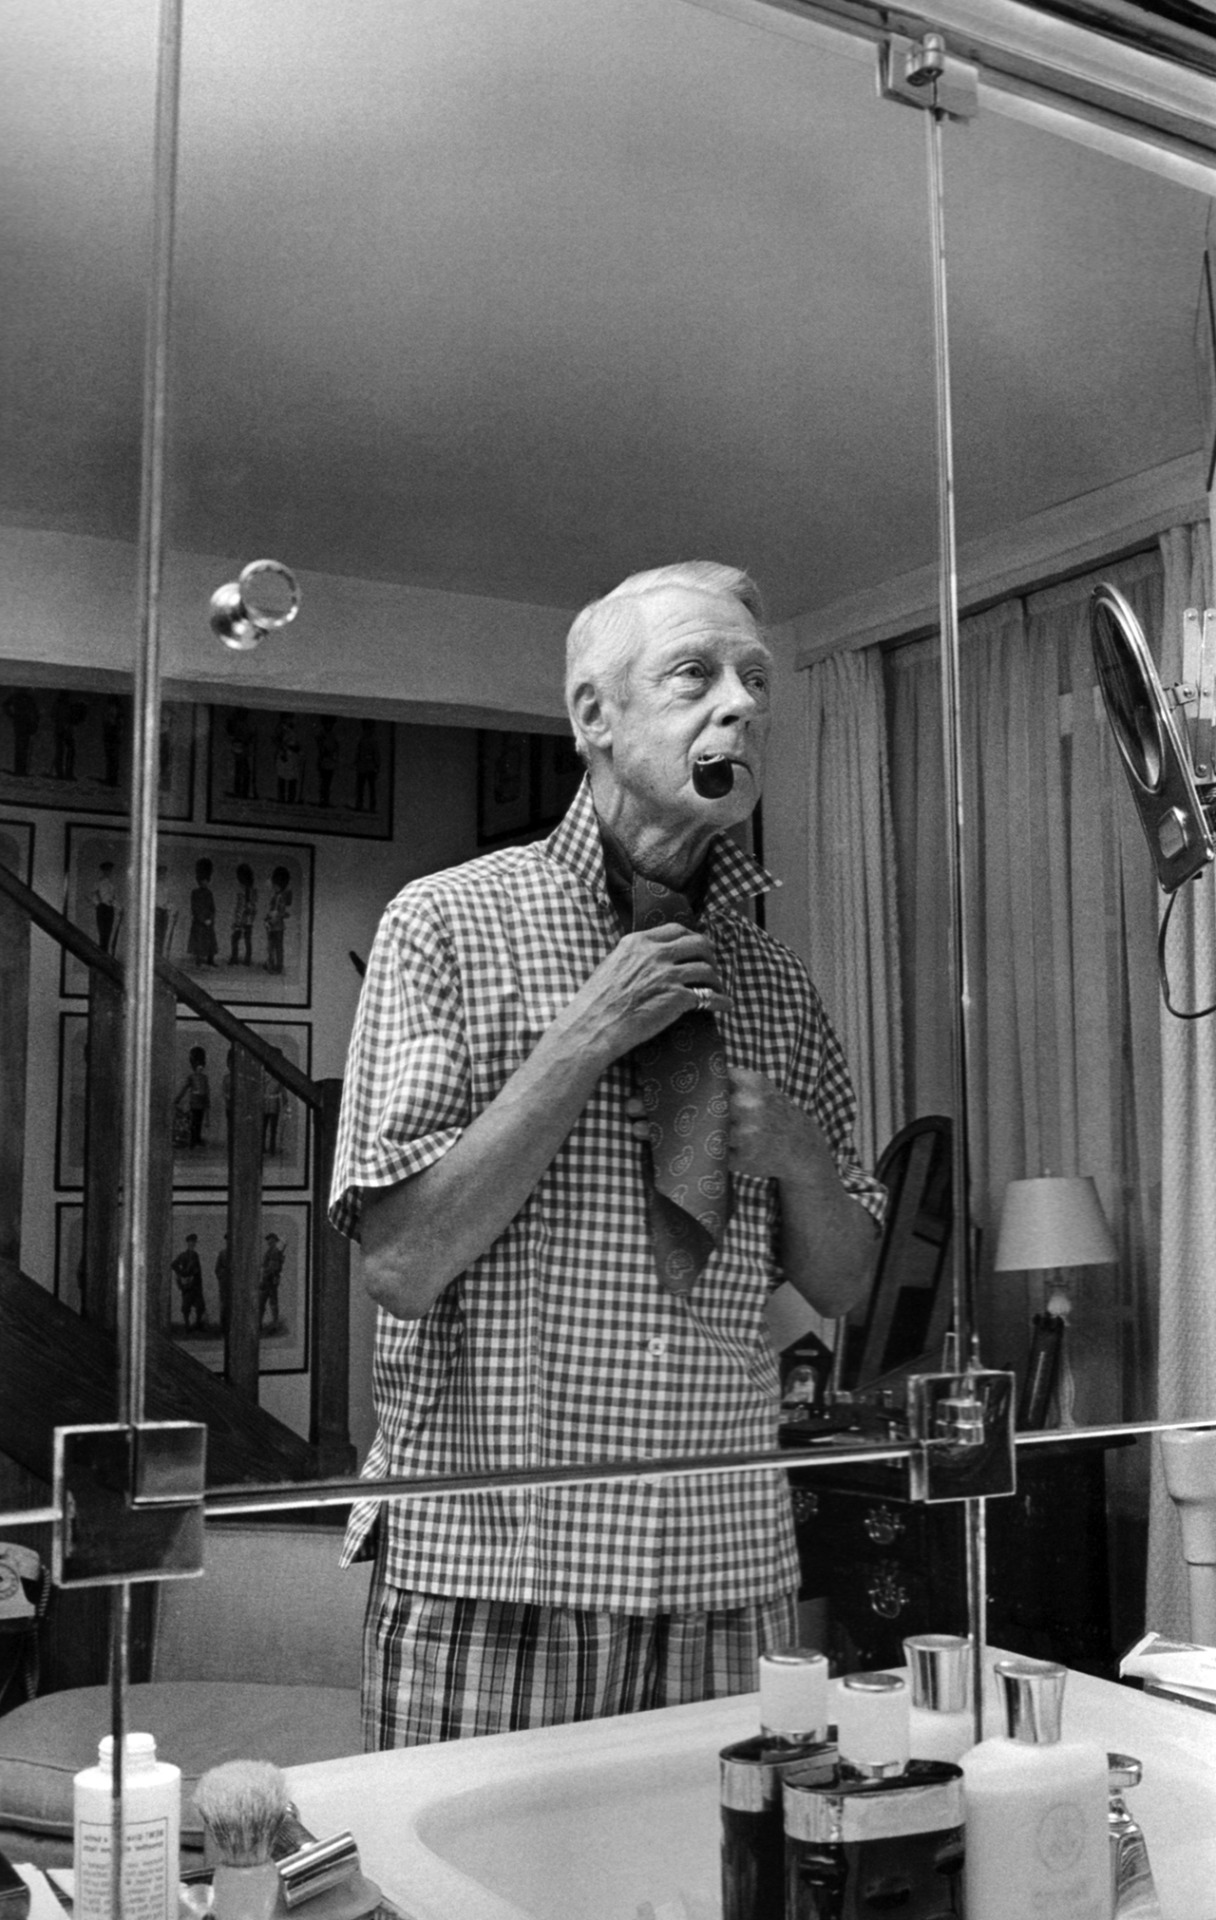 1967. The Duke of Windsor, the pipe, and the covered neck.